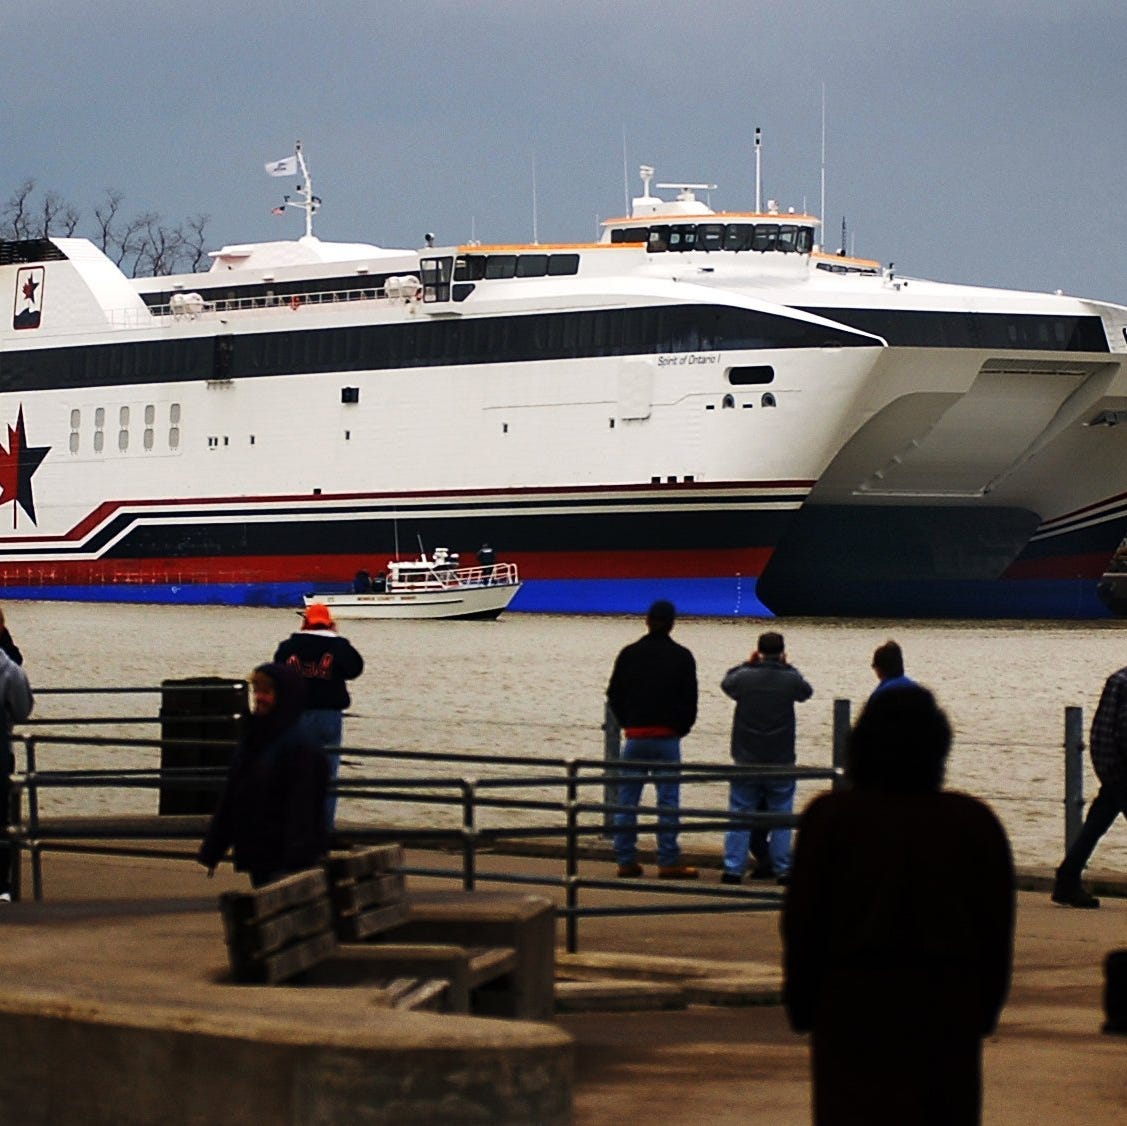 Rochester's fast ferry is a political issue again. This time it could topple a government.